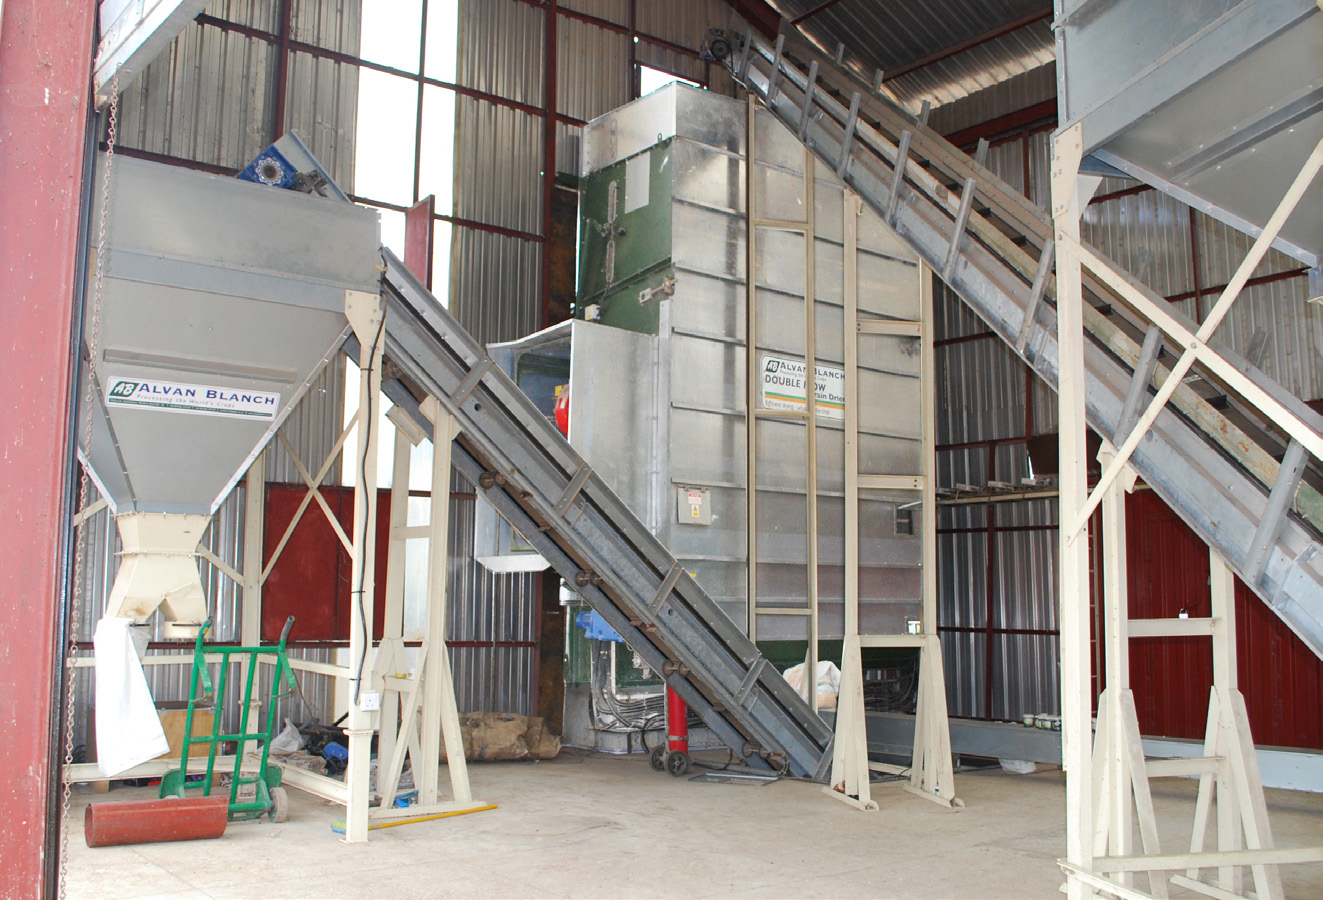 Alvan Blanch Grain Cleaning Drying and Bulk Storage Ilorin Nigeria Page 2 Image 0003